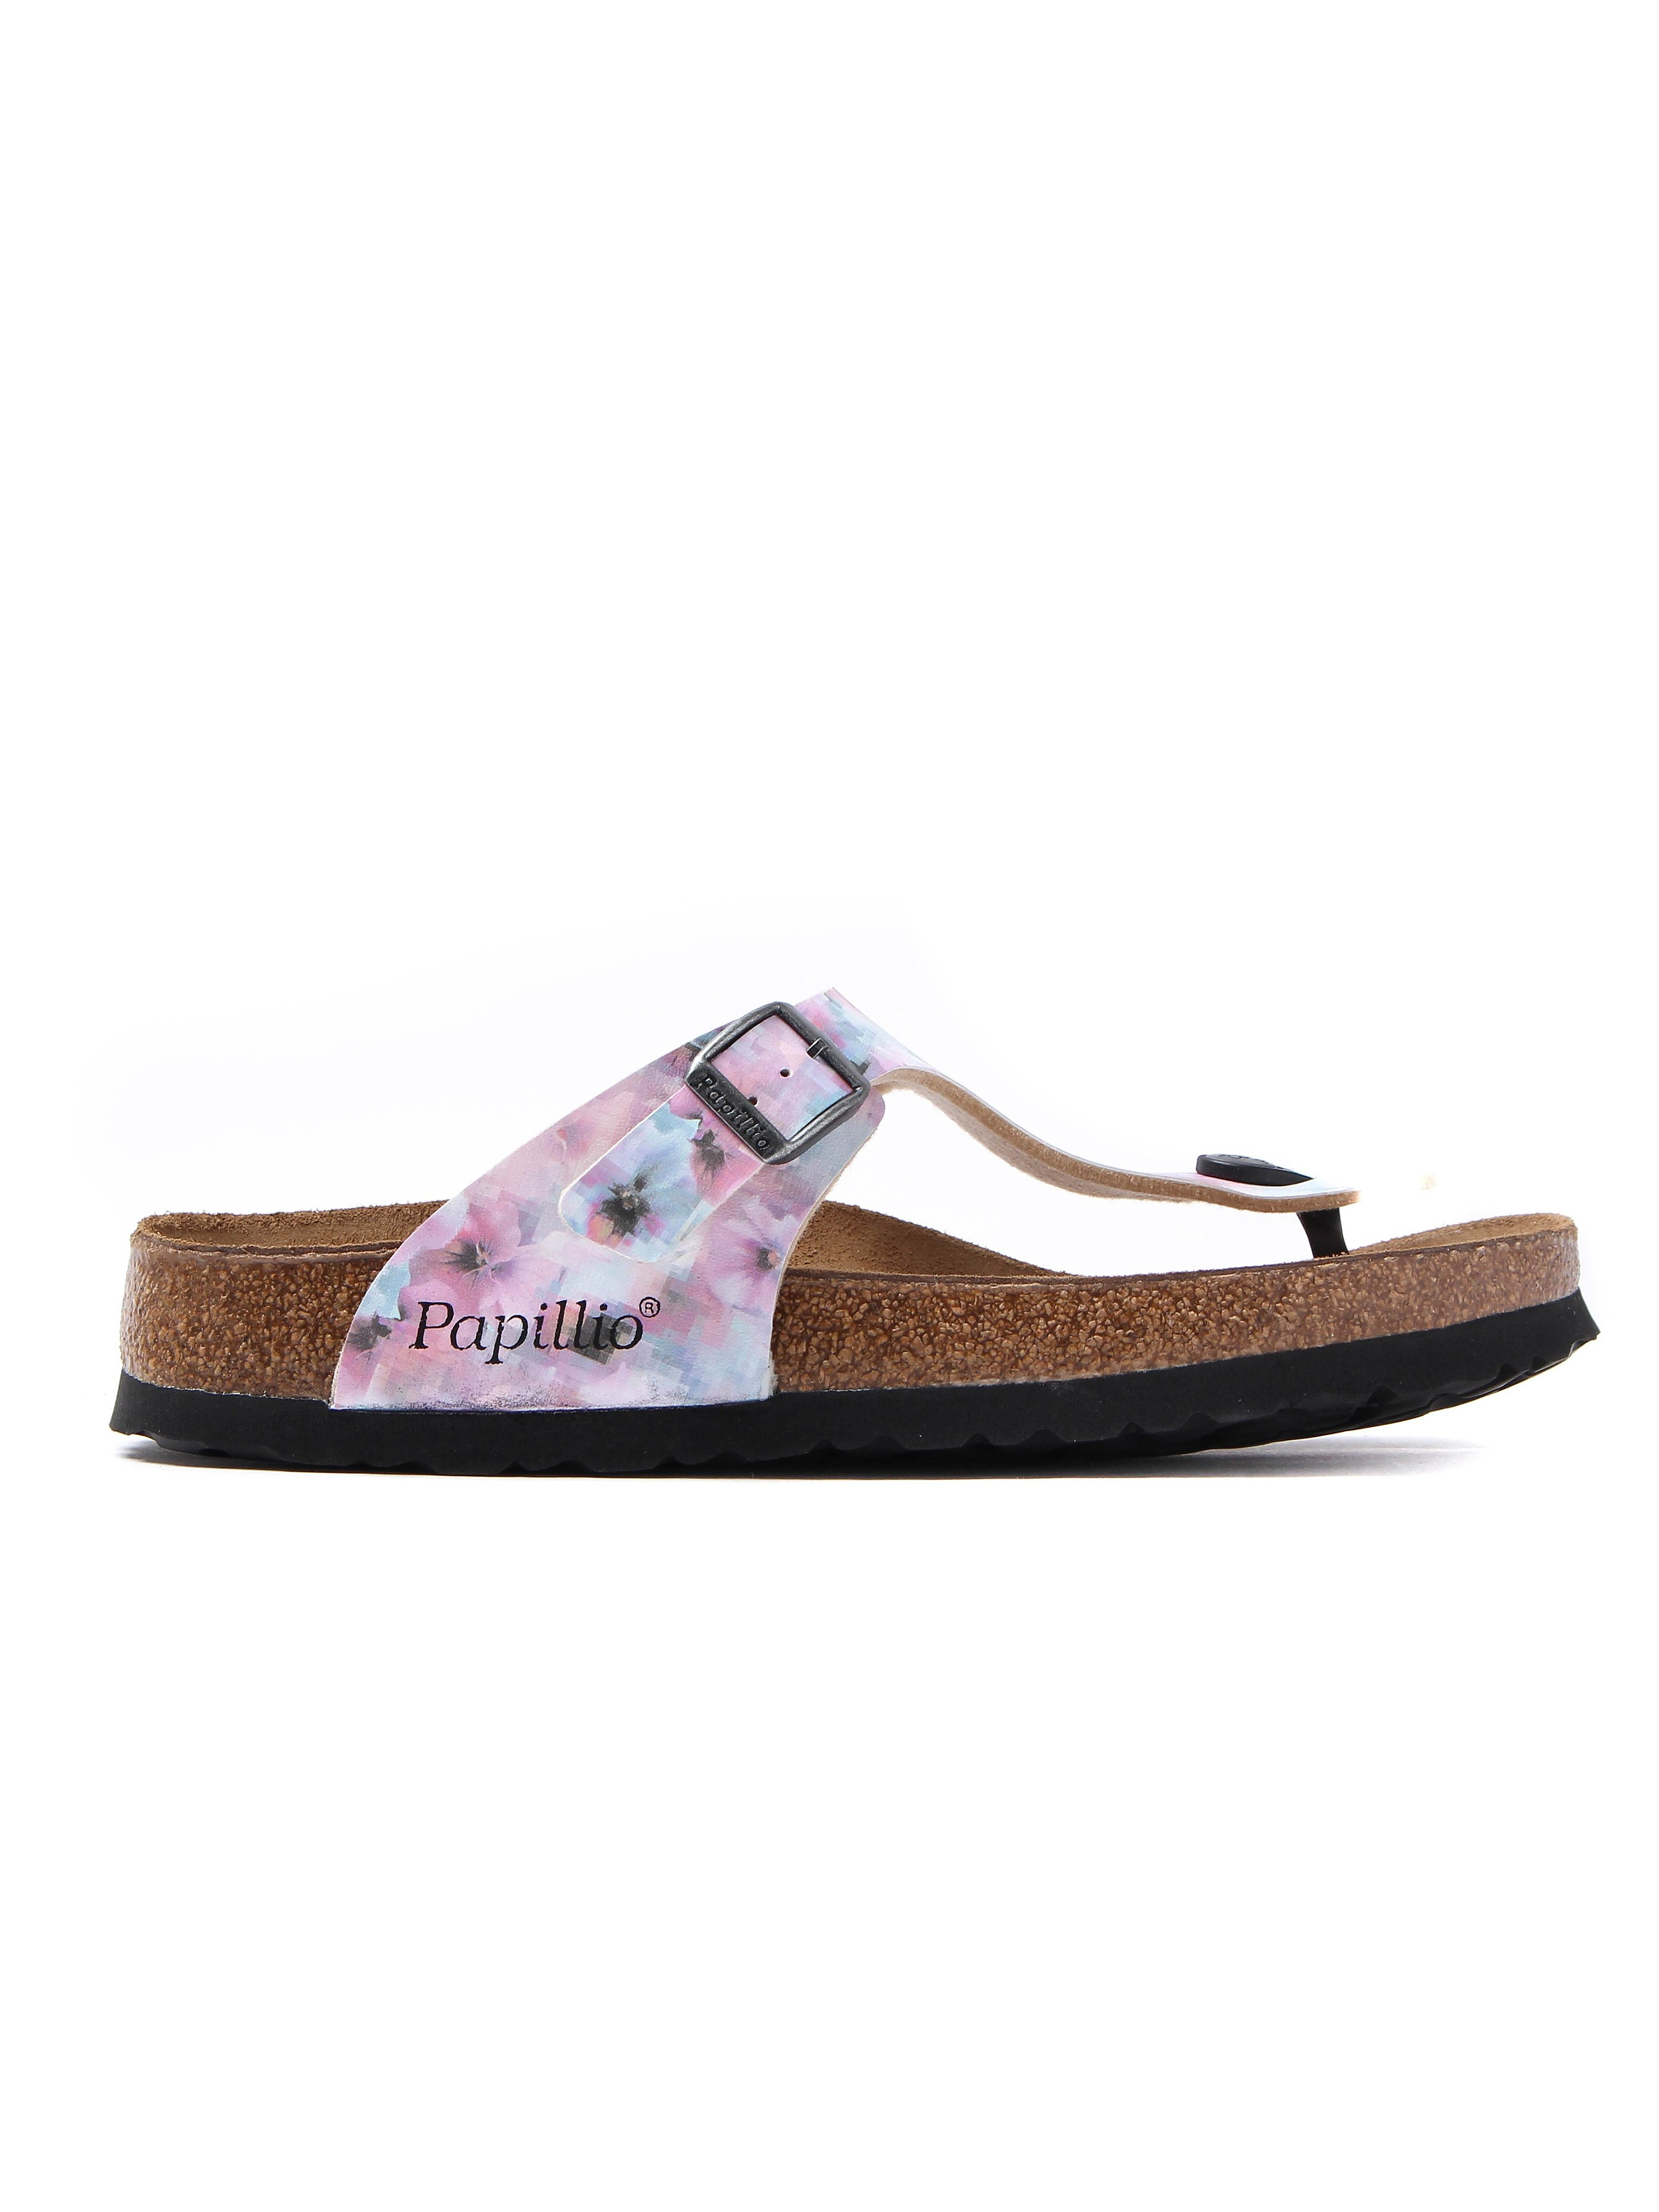 Birkenstock Papillio Women's Gizeh Pap Regular Fit Sandals - Pixel Rose